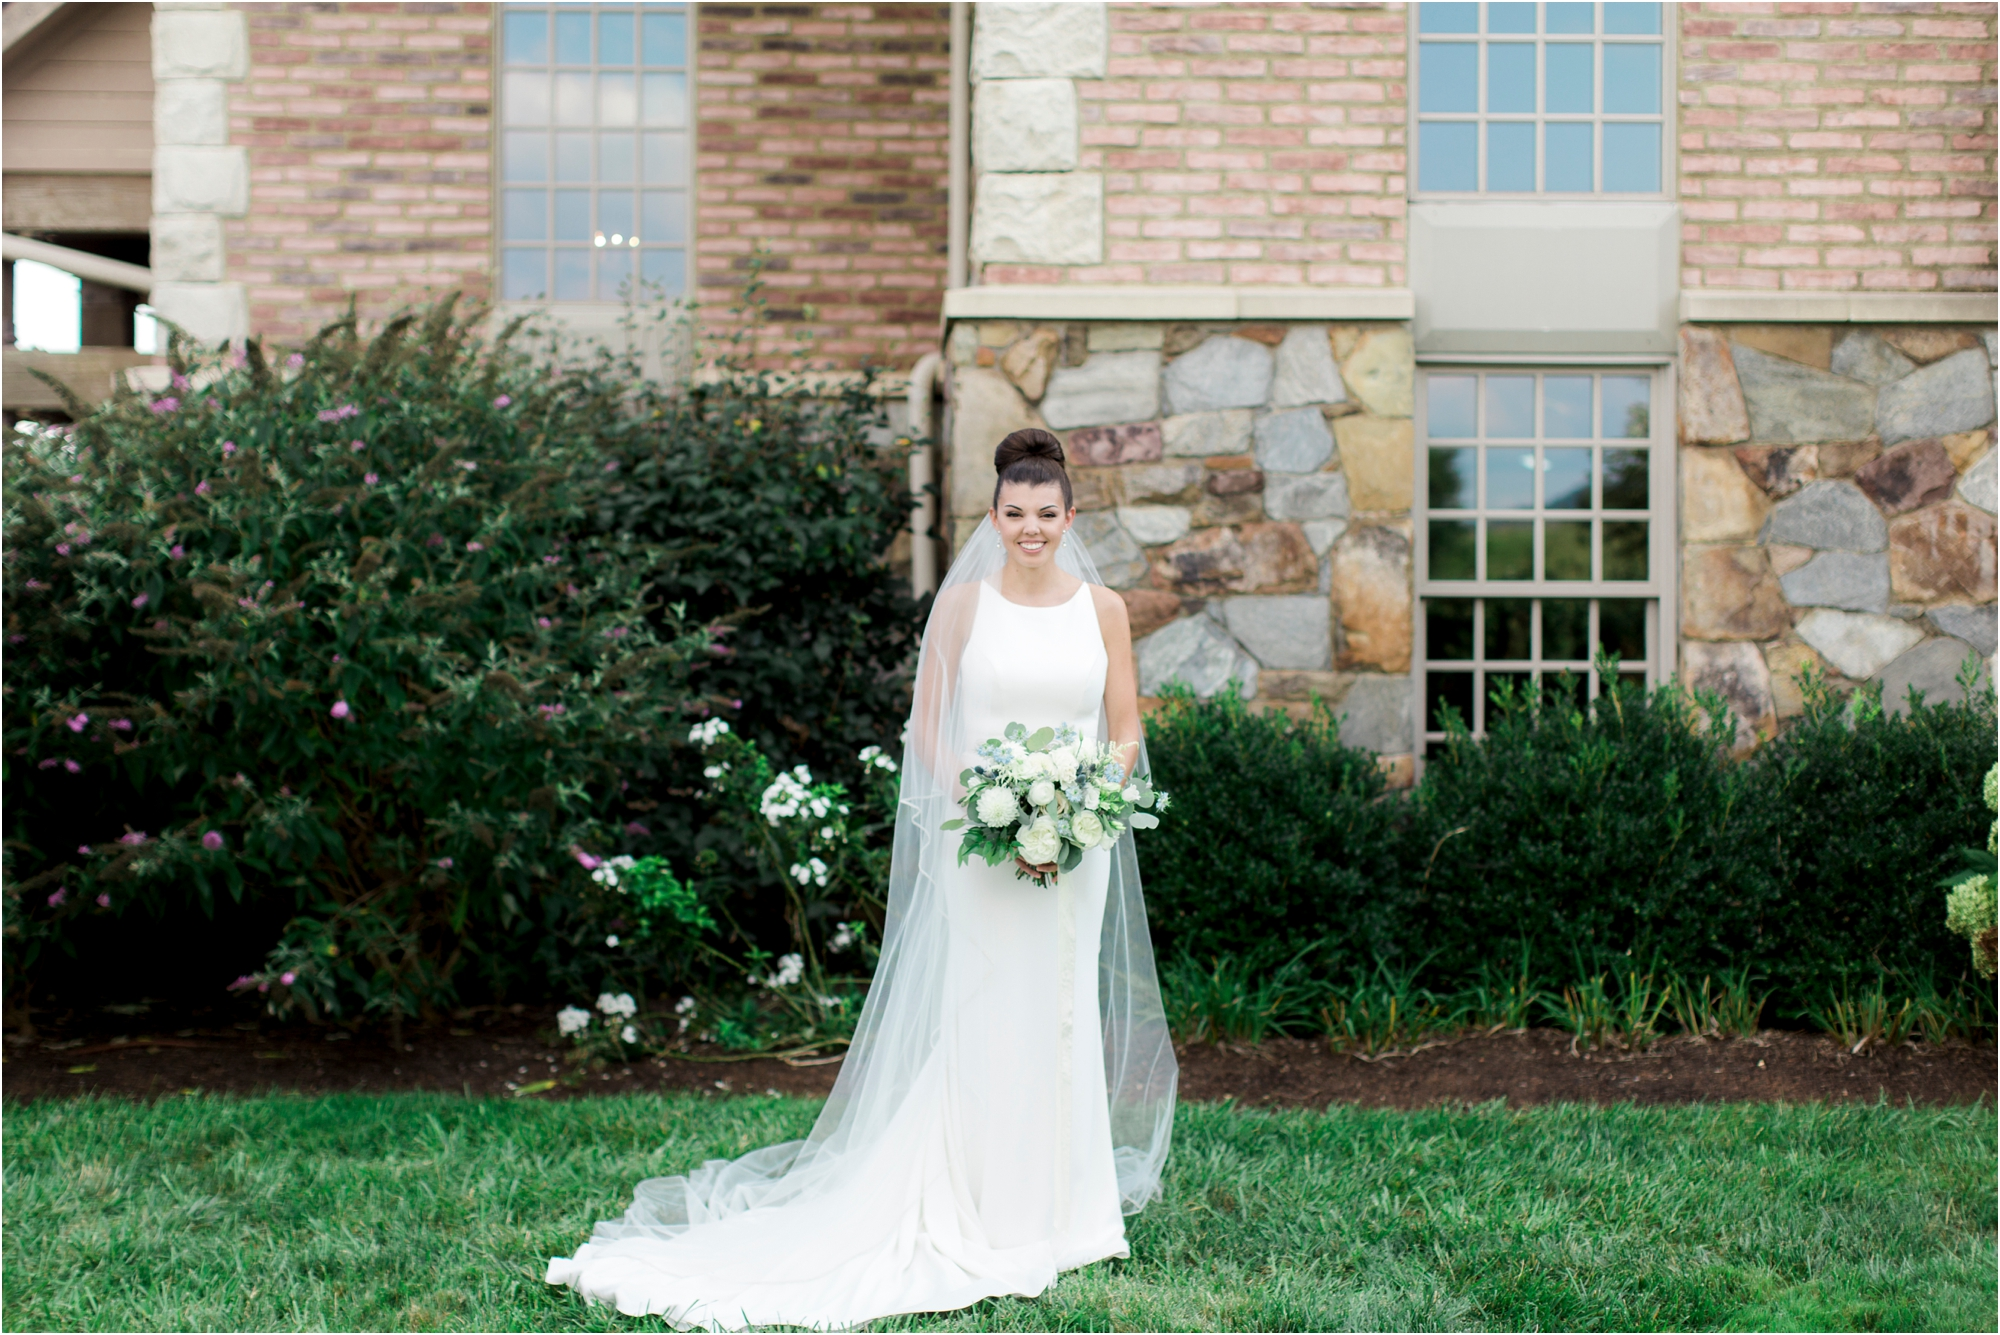 michelle-george-early-mountain-vineyard-charlottesville-virginia-wedding-photos_0033.jpg